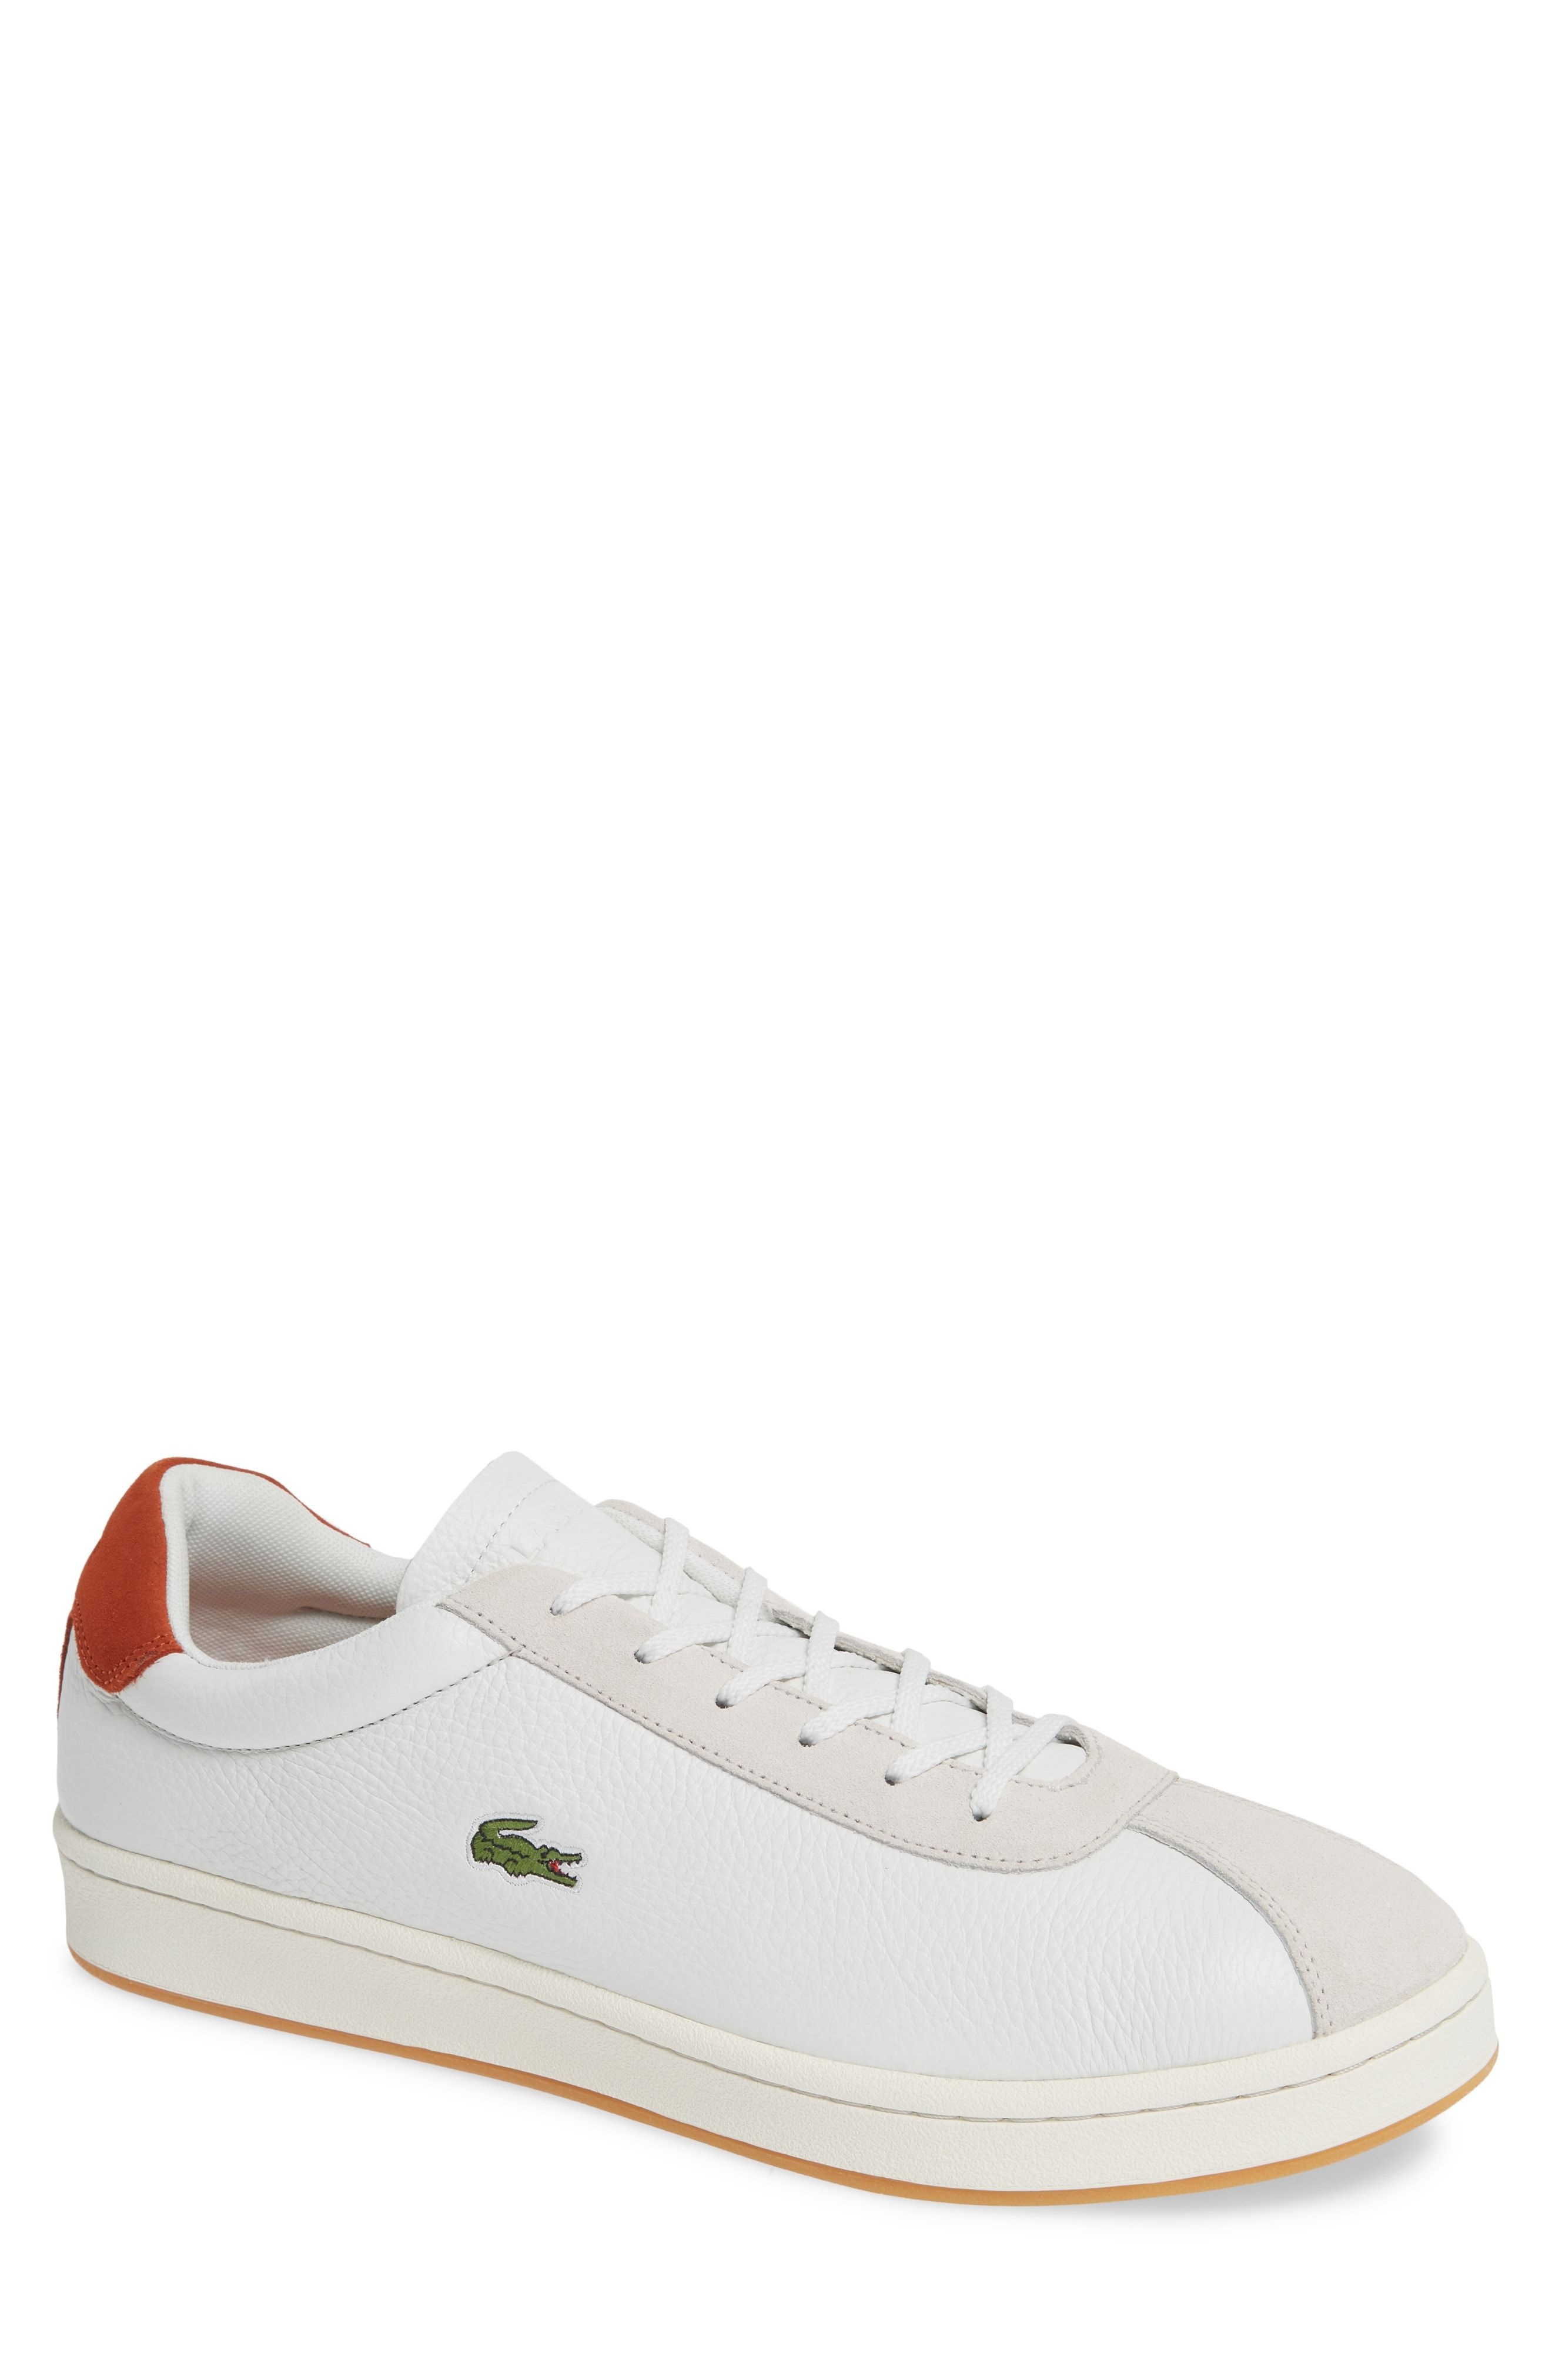 caae784856455 LACOSTE MASTERS 119 SMA SNEAKER.  lacoste  shoes